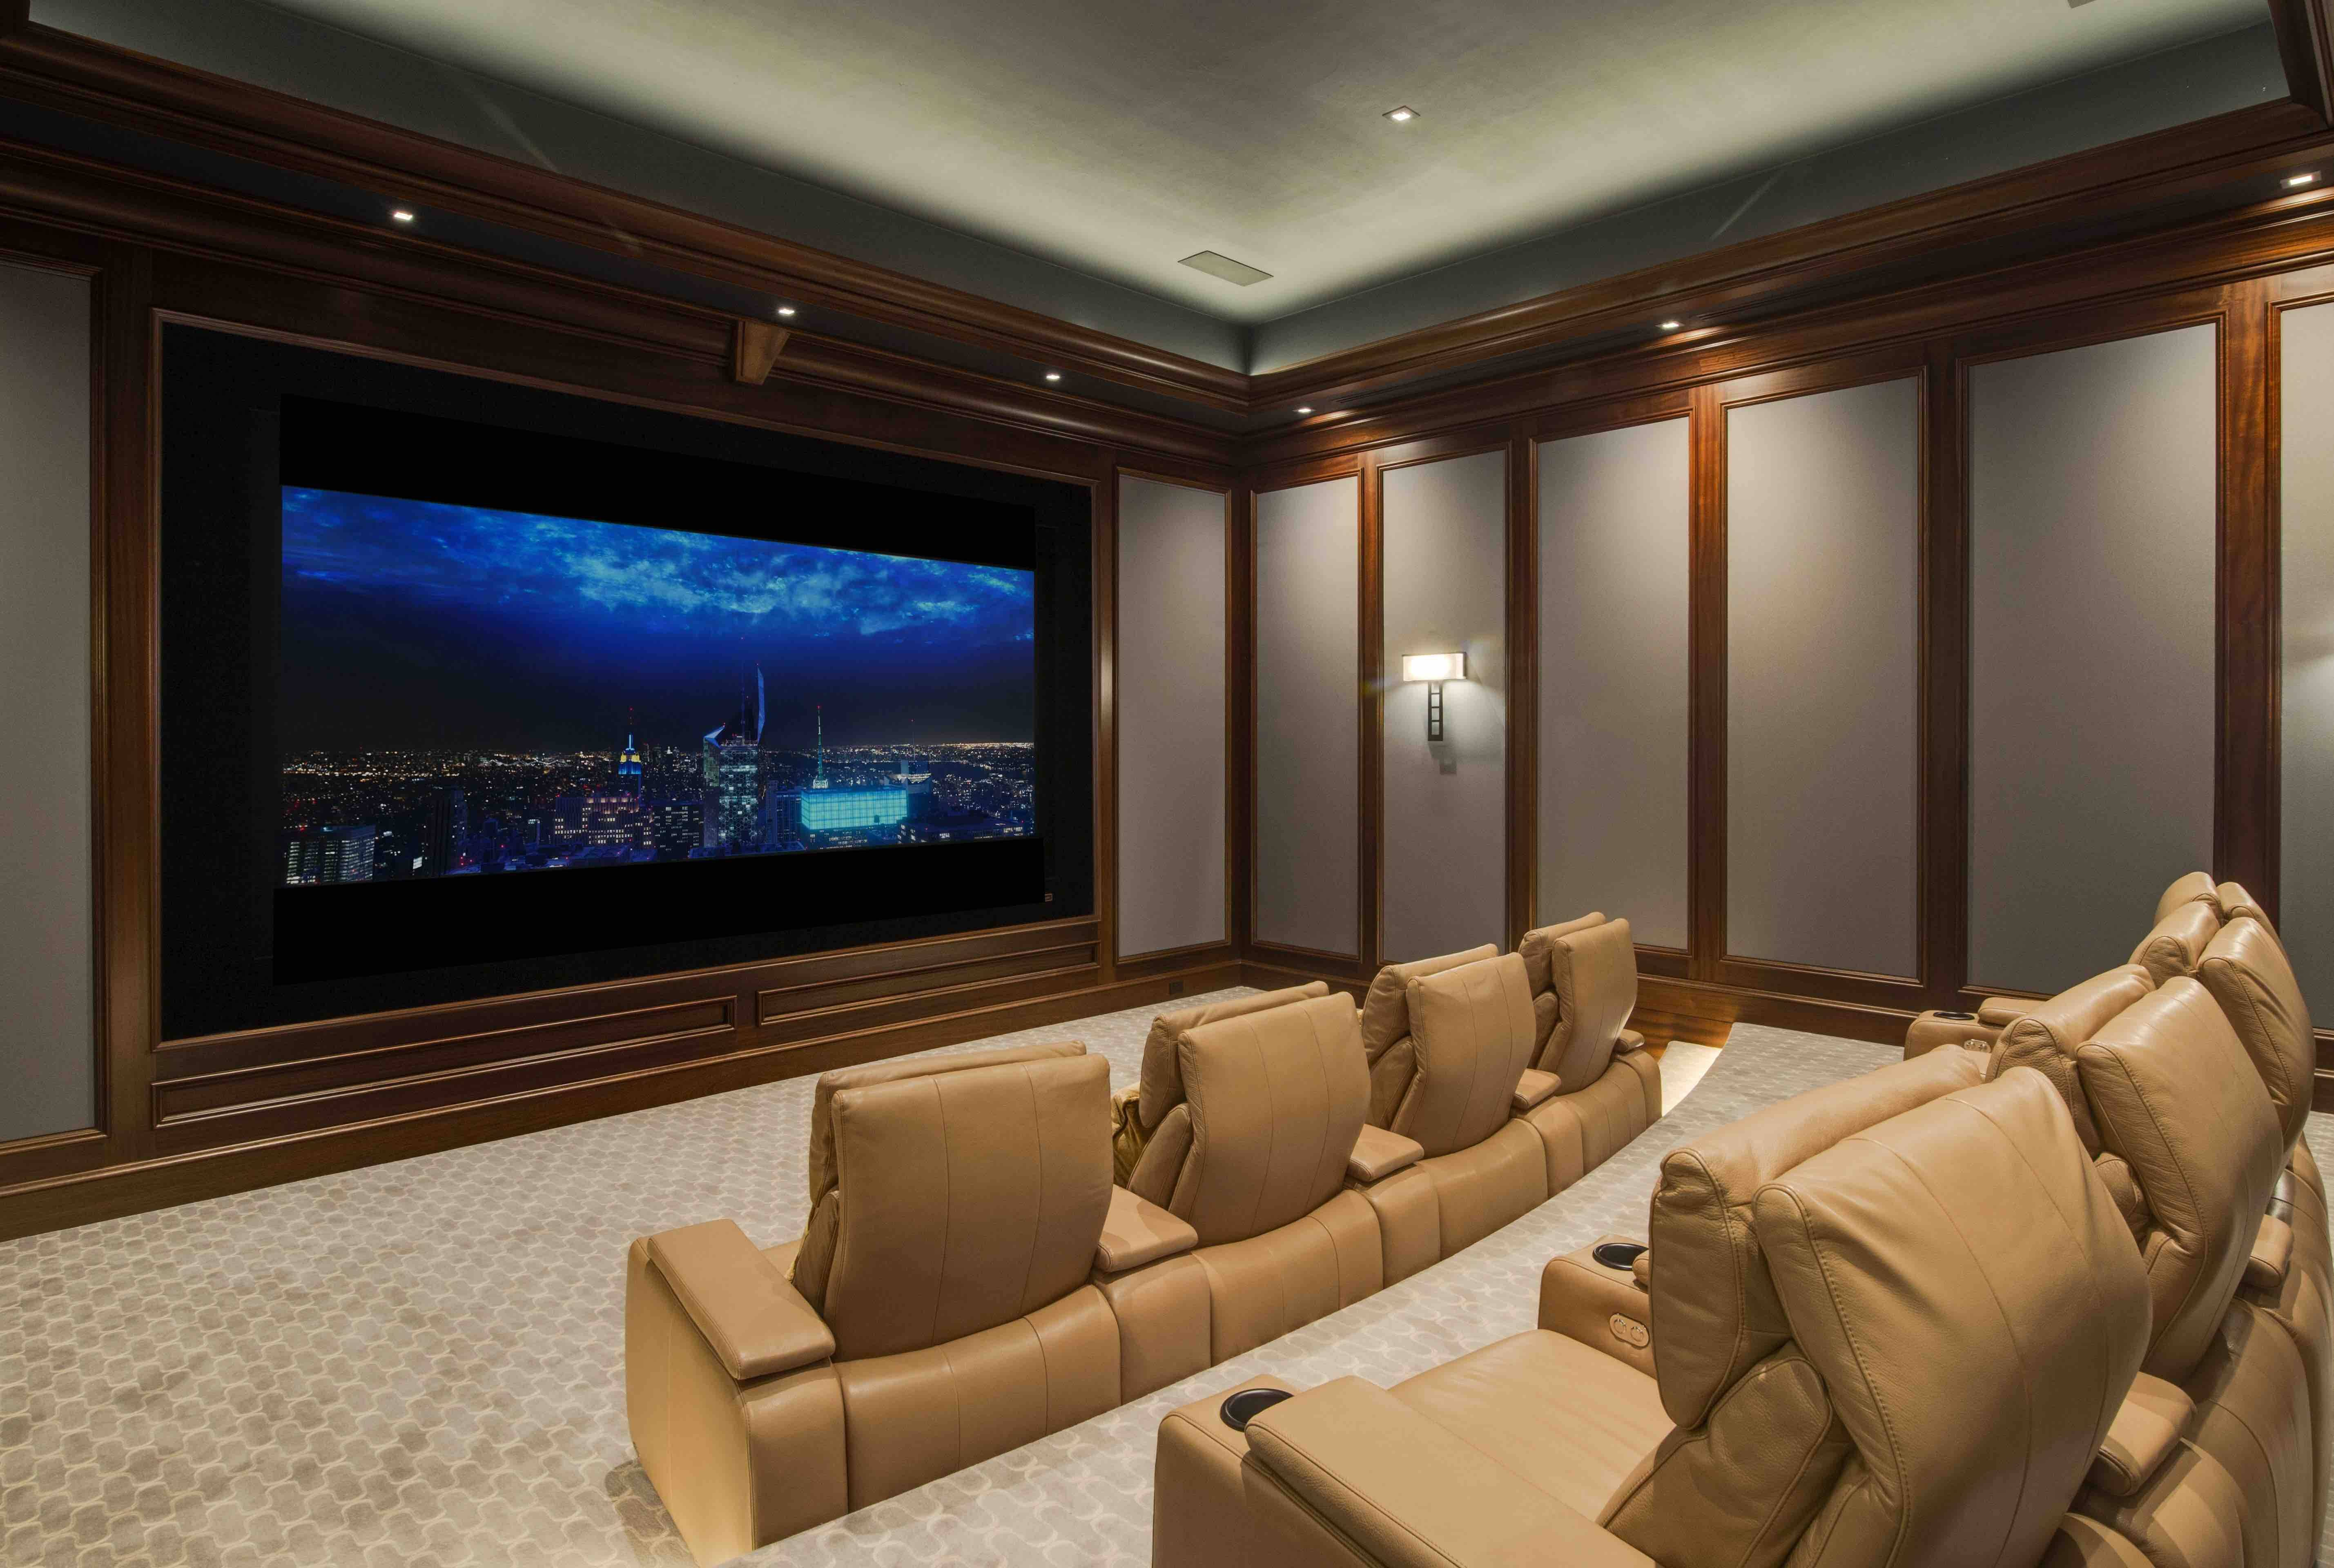 Residential Audio/Video, Lighting, Security, Energy Management Solutions, Residential, smart home, home automation, security systems, home theater, lighting control, energy management